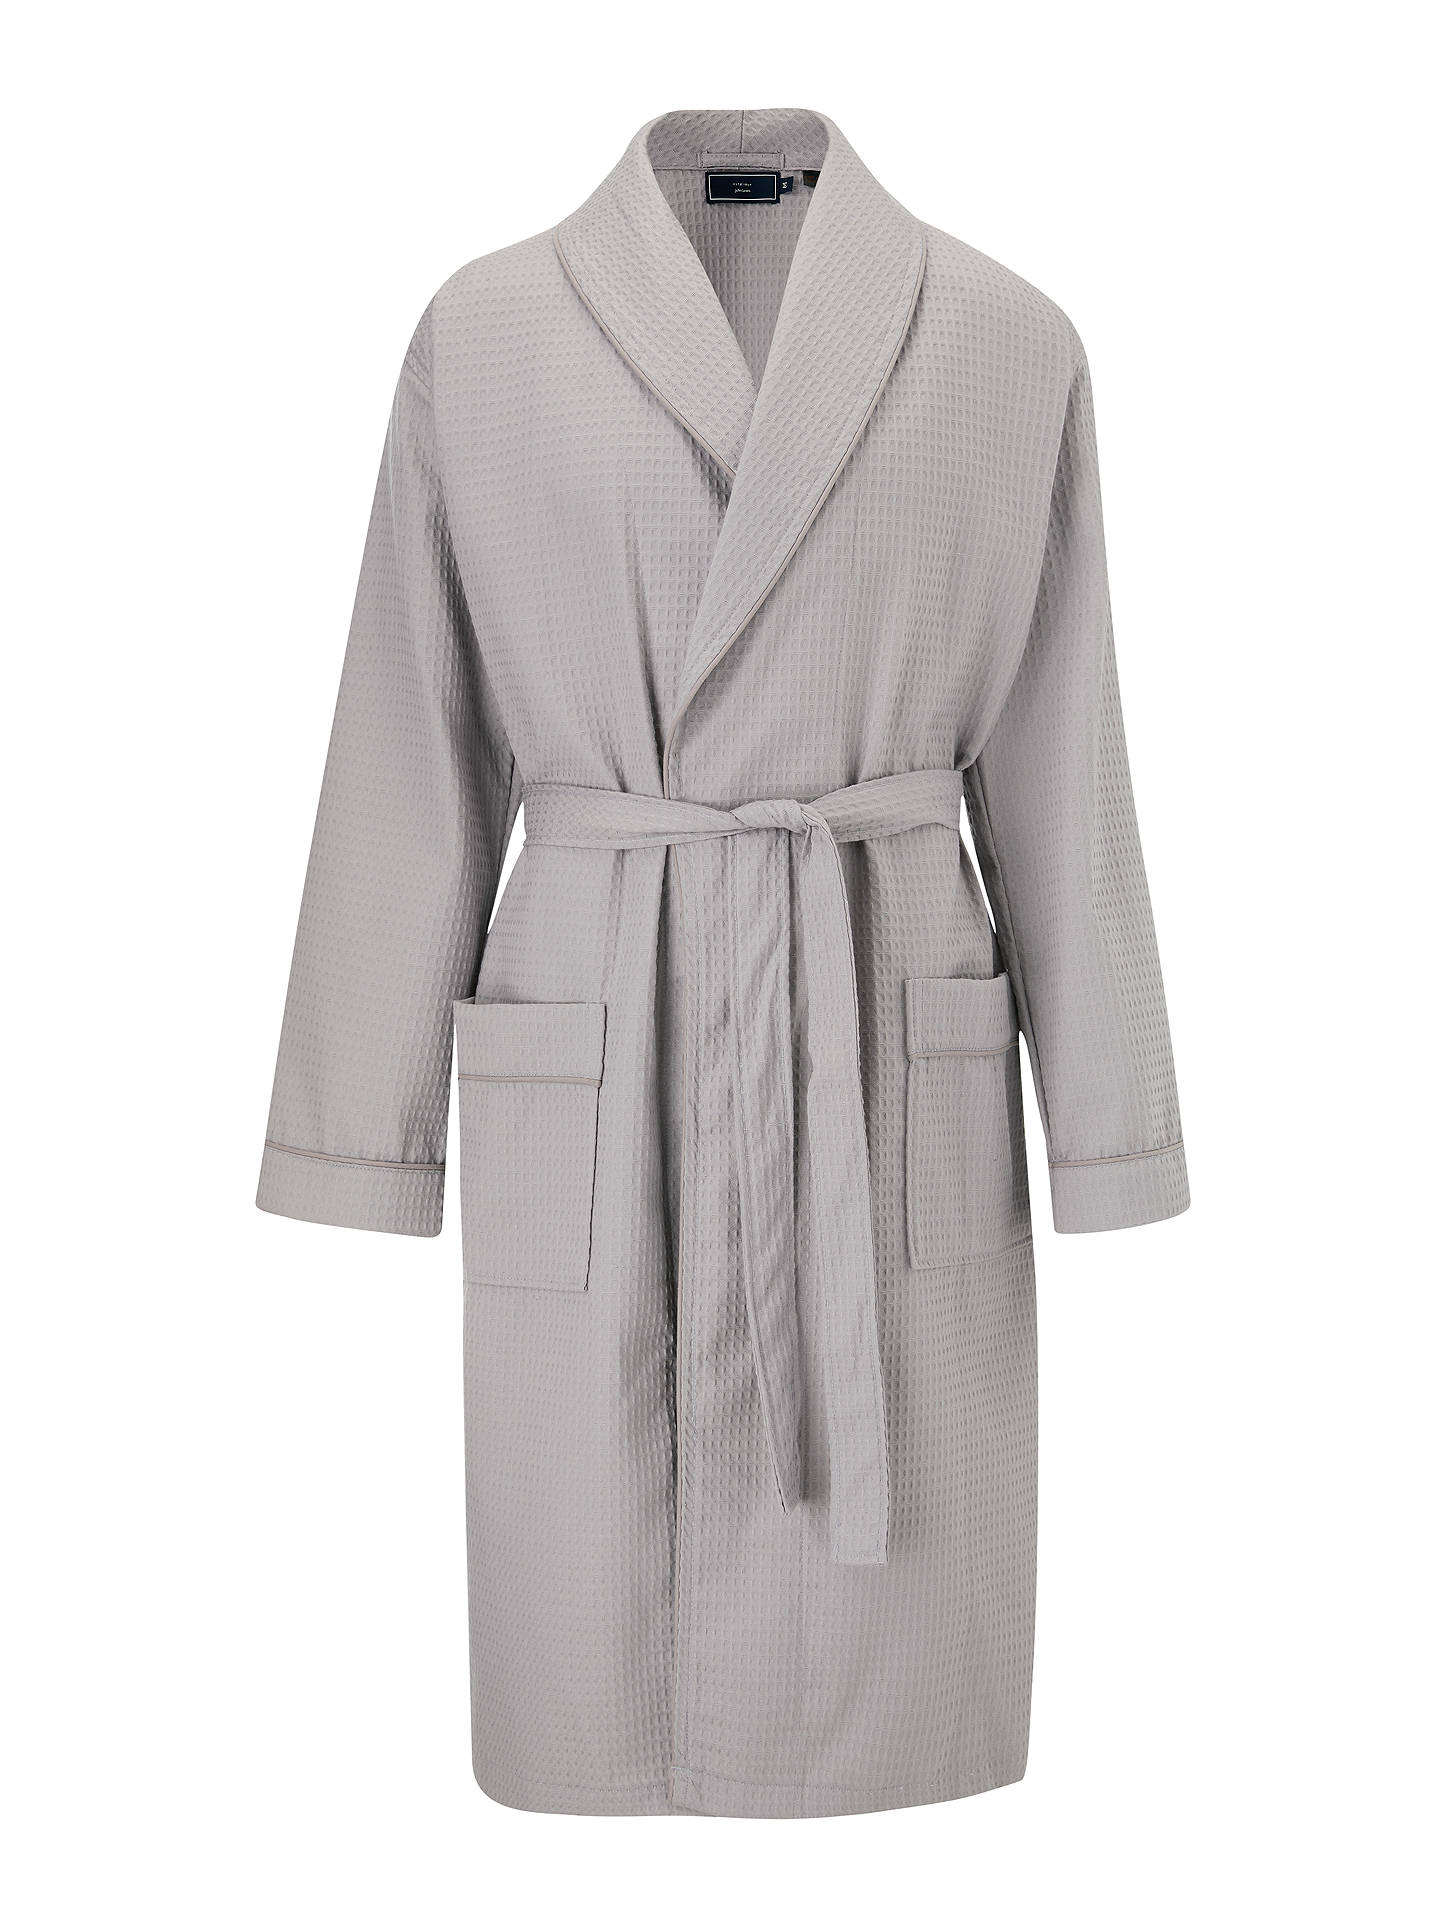 Buy John Lewis & Partners Cotton Waffle Robe, Grey, S Online at johnlewis.com